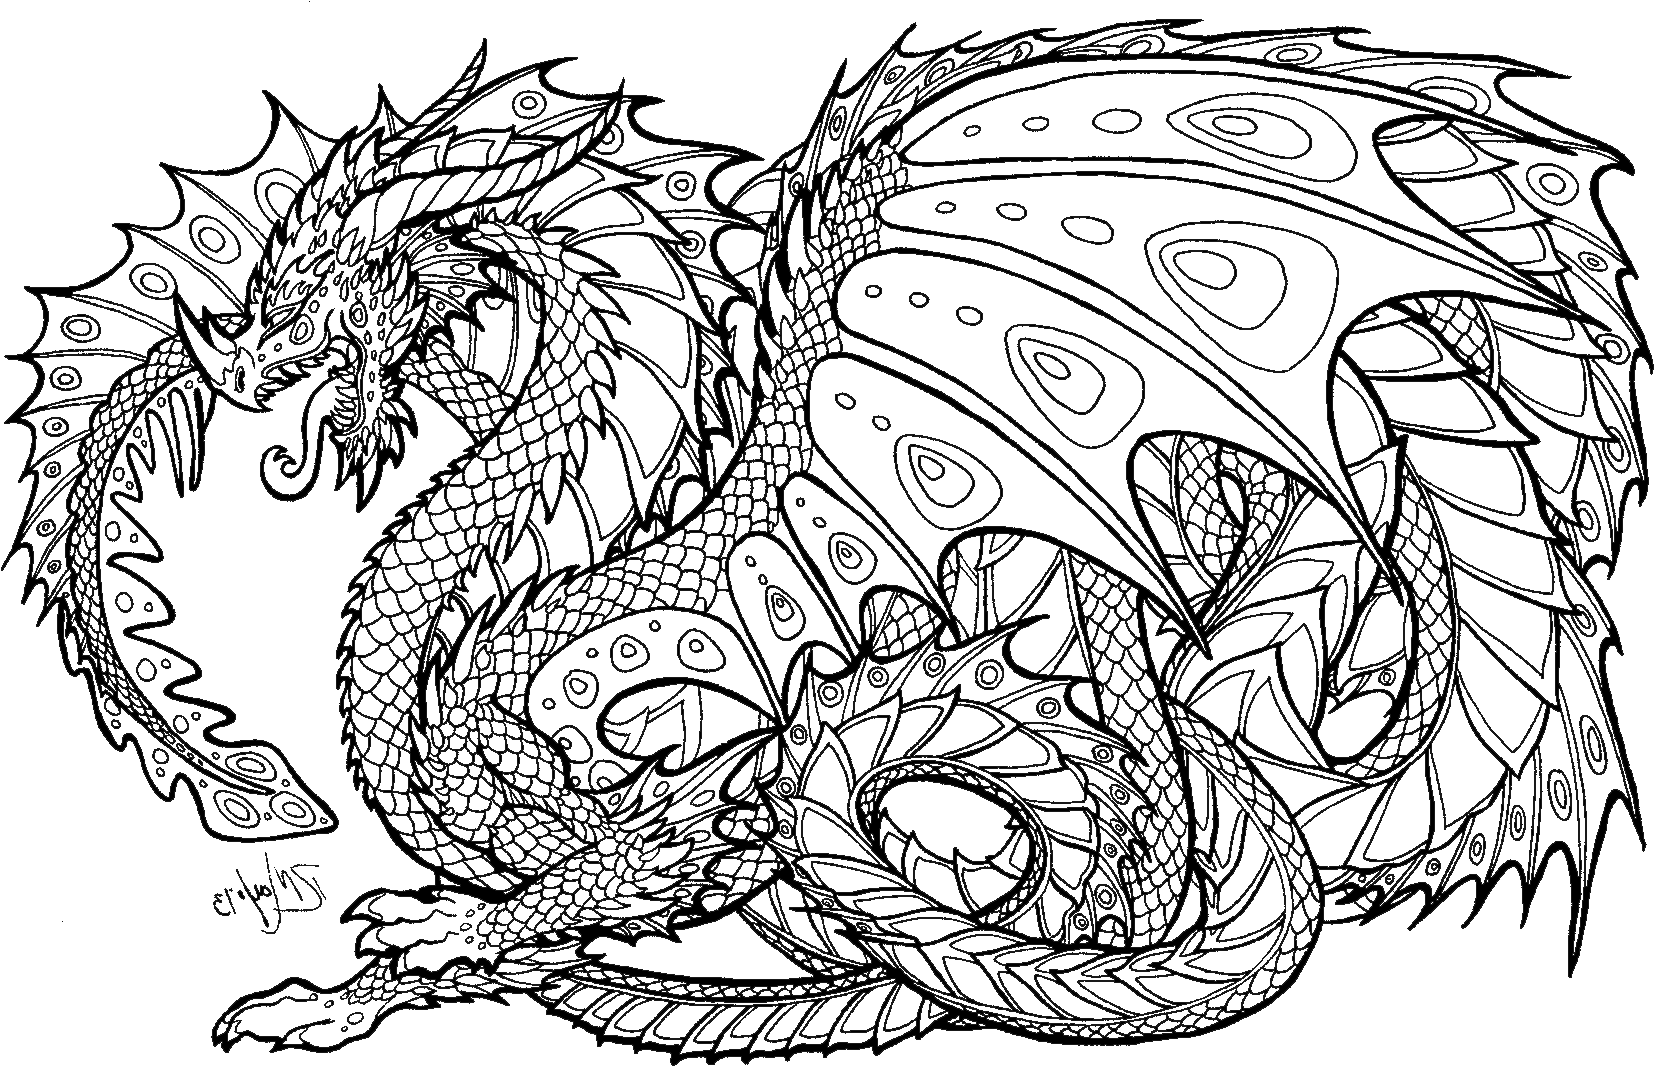 Download Realistic Dragon Coloring Pages For Adults Adult Colouring Pages Dragon Png Image With No Background Pngkey Com